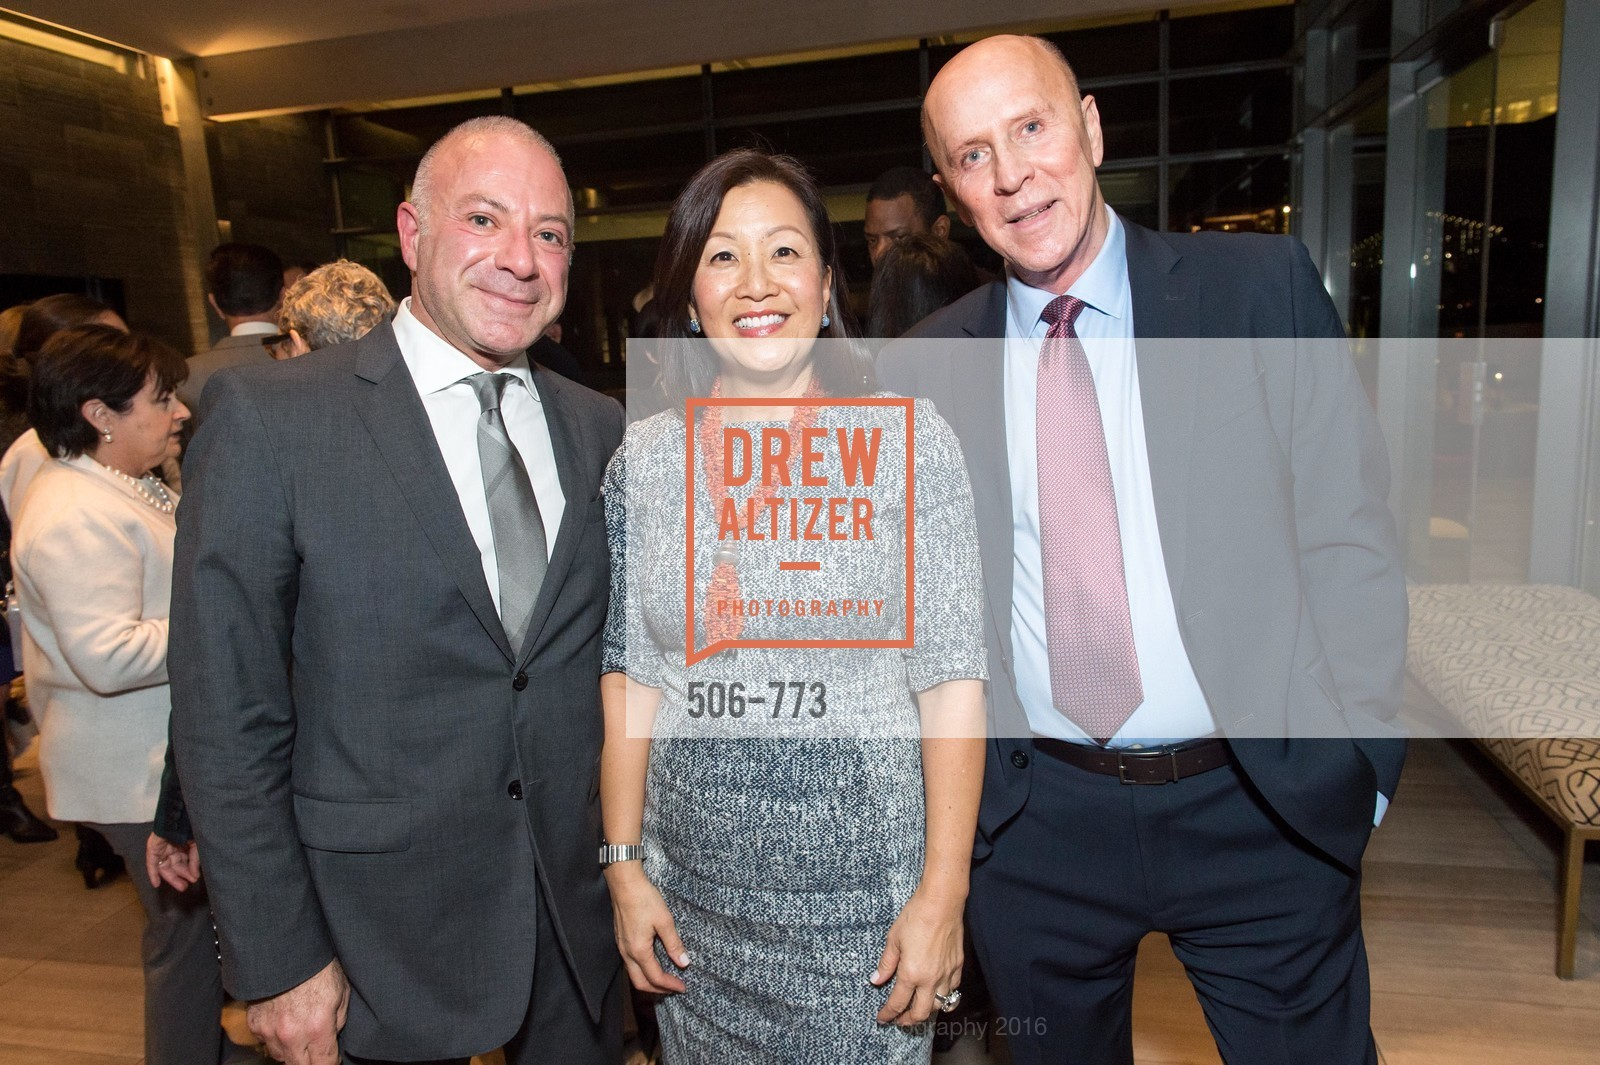 Emmy Wei, Tom Biss, Sotheby's International Realty's Celebrates the New Year, The Battery, Penthouse. 717 Battery St, January 27th, 2016,Drew Altizer, Drew Altizer Photography, full-service agency, private events, San Francisco photographer, photographer california